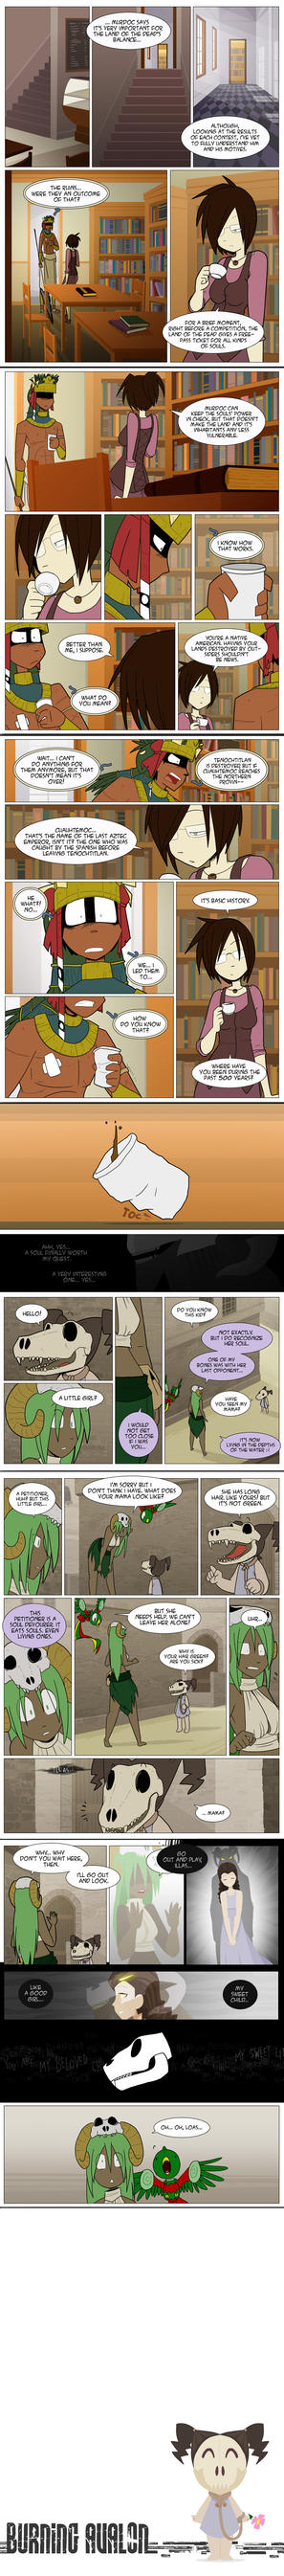 Burning Avalon Round 3: Page 3 by Tickity-Tock